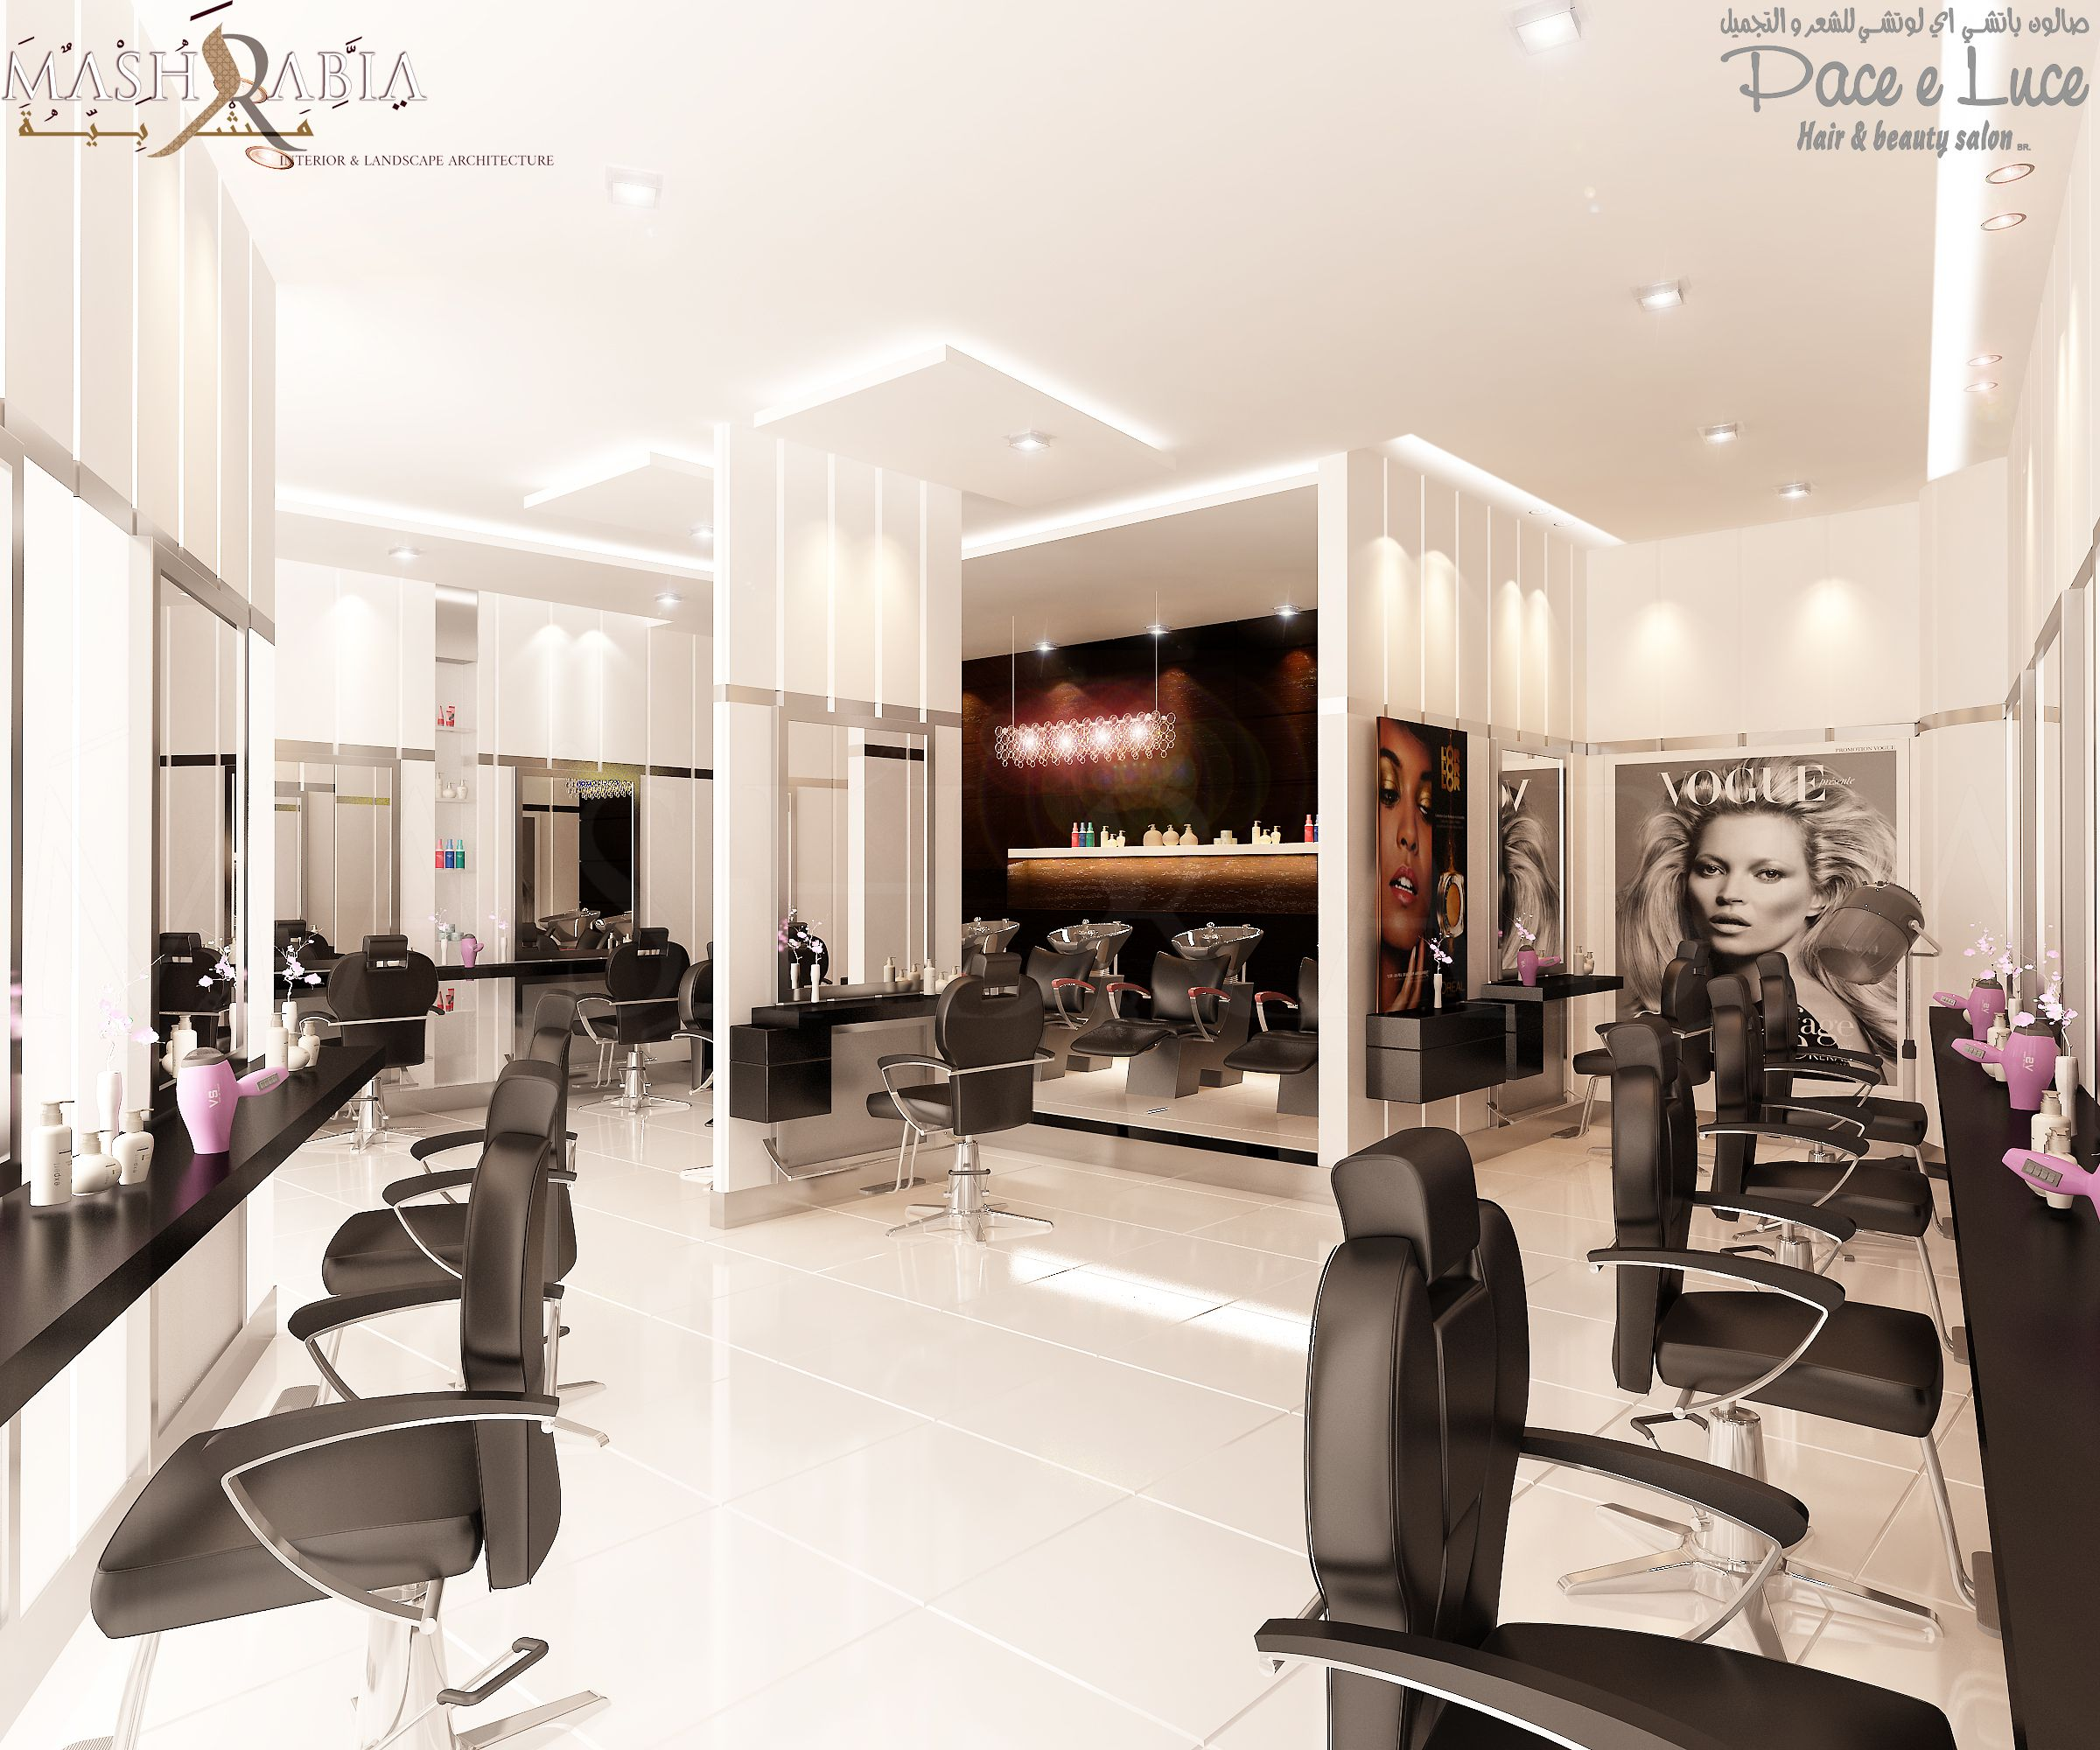 Paceeluce Pace e Luce Hair and Beauty salon White flooring